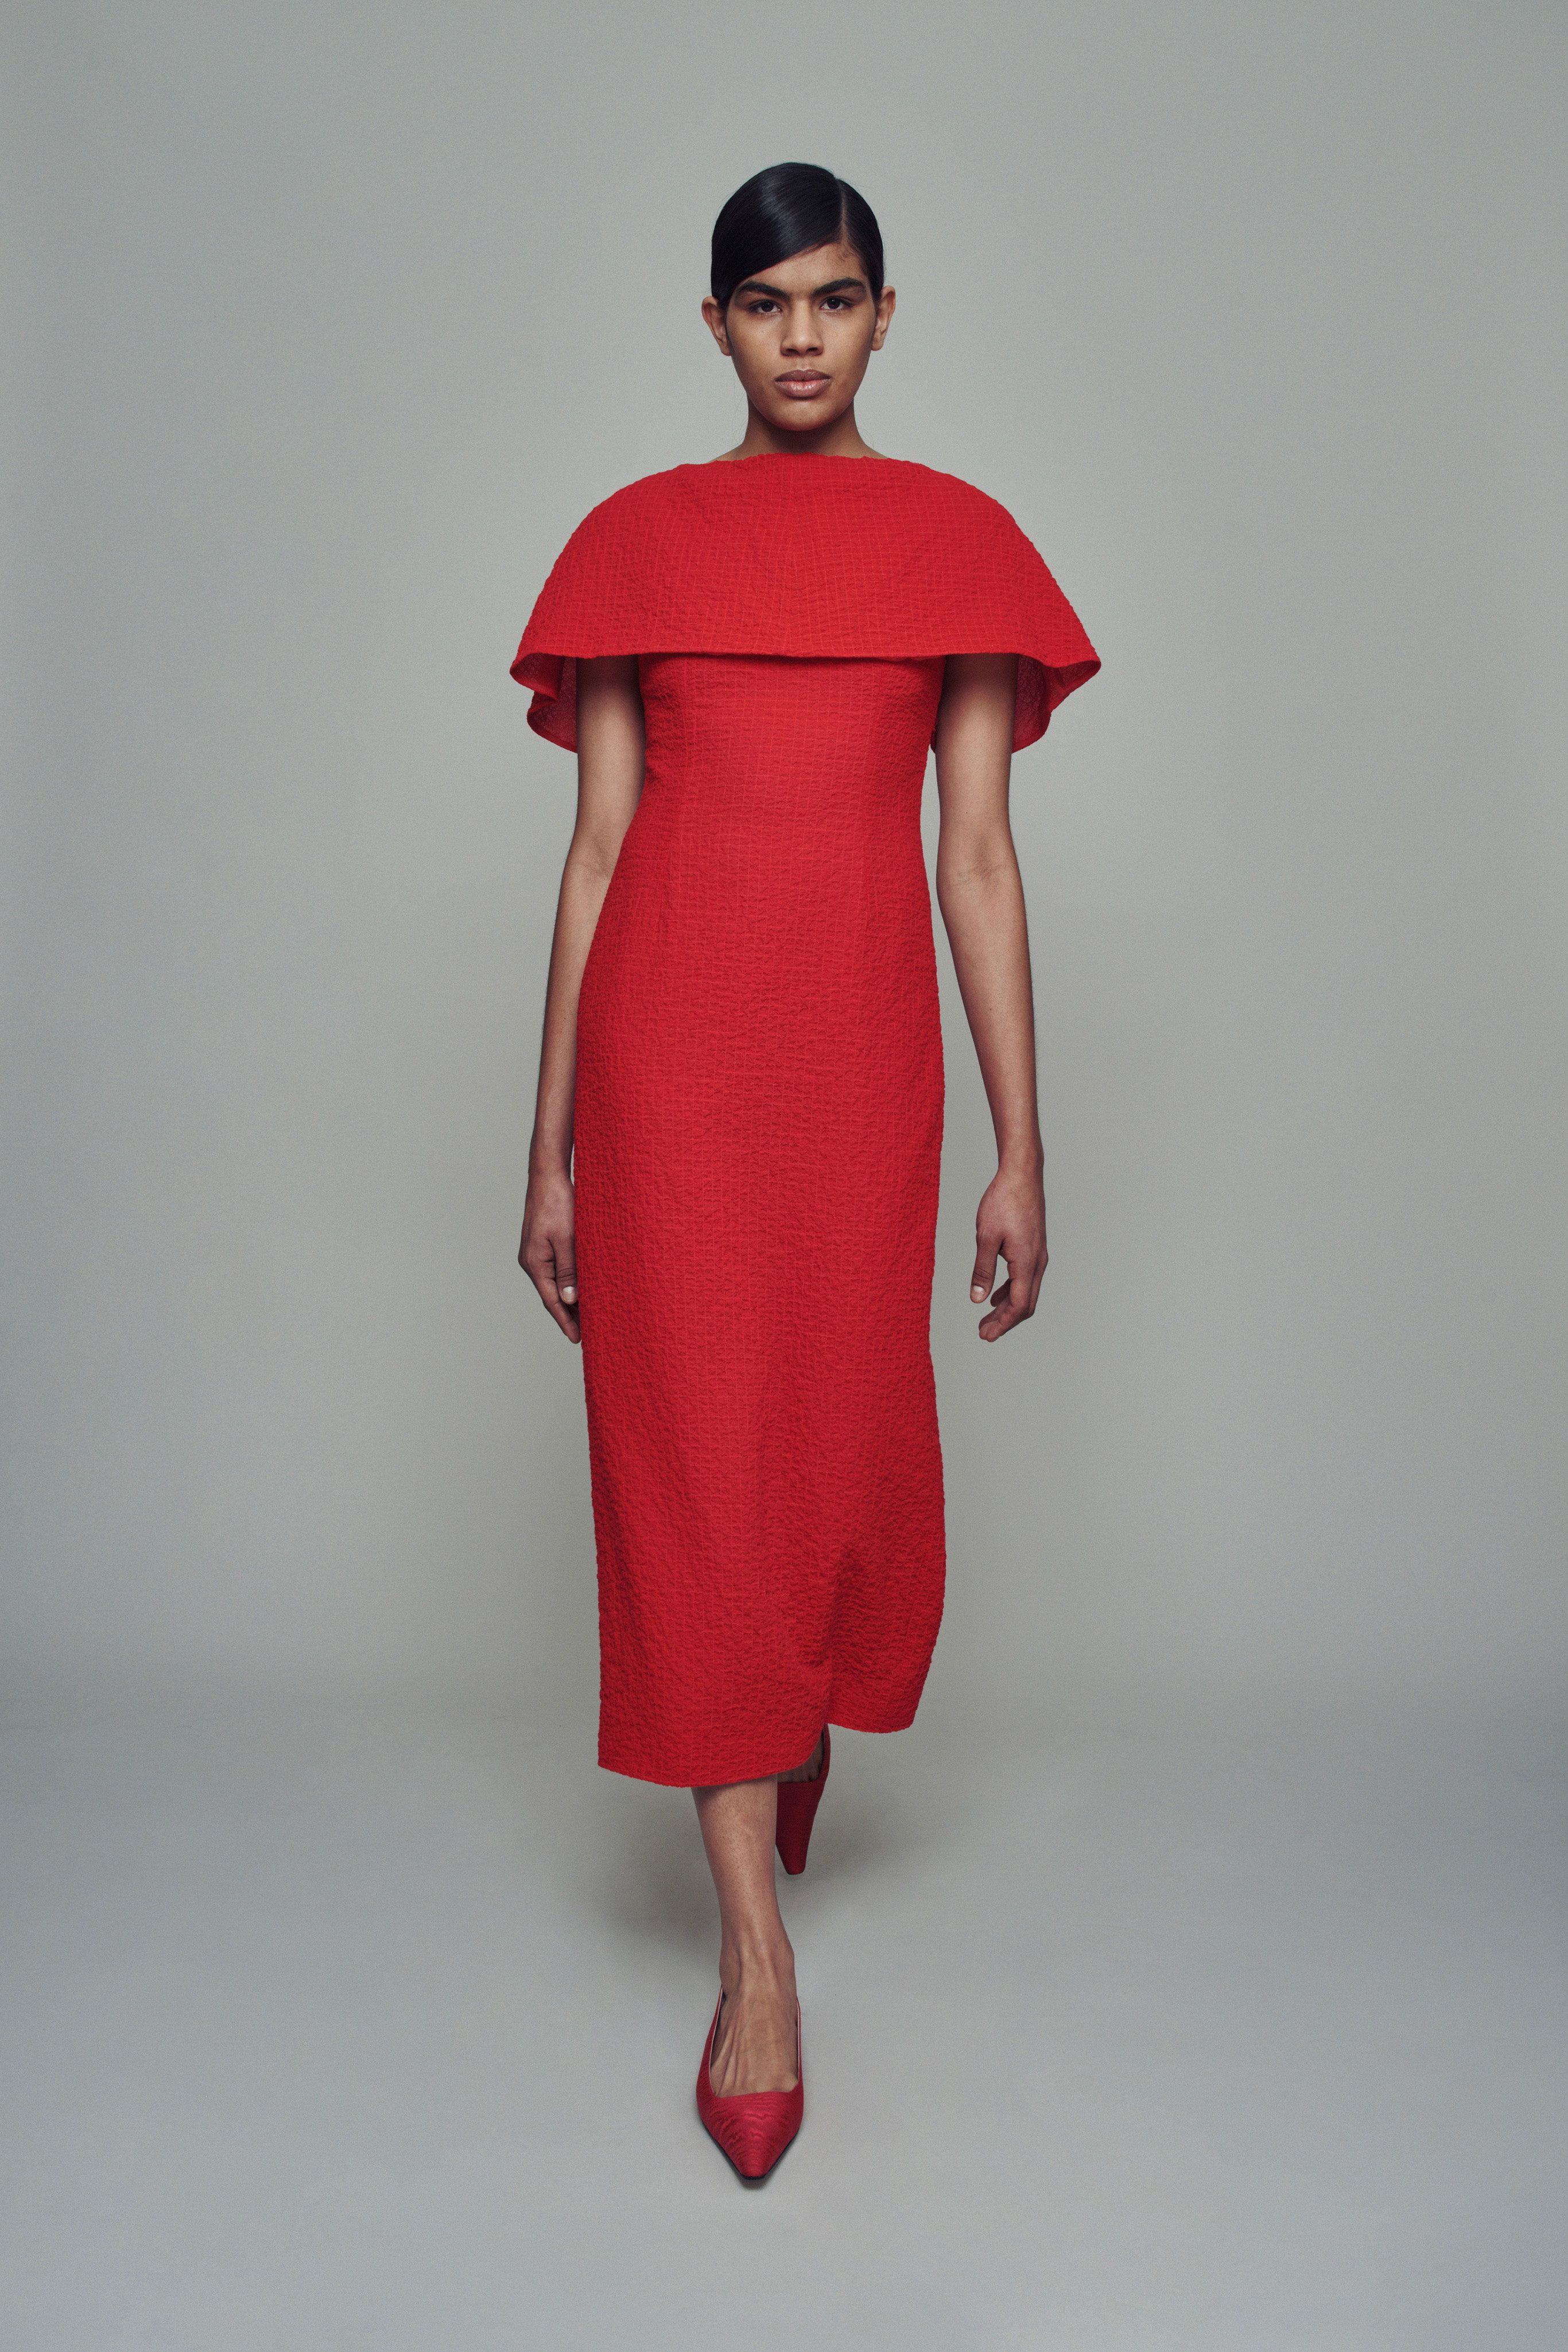 Image result for Emilia Wickstead spring 2021 red outfit